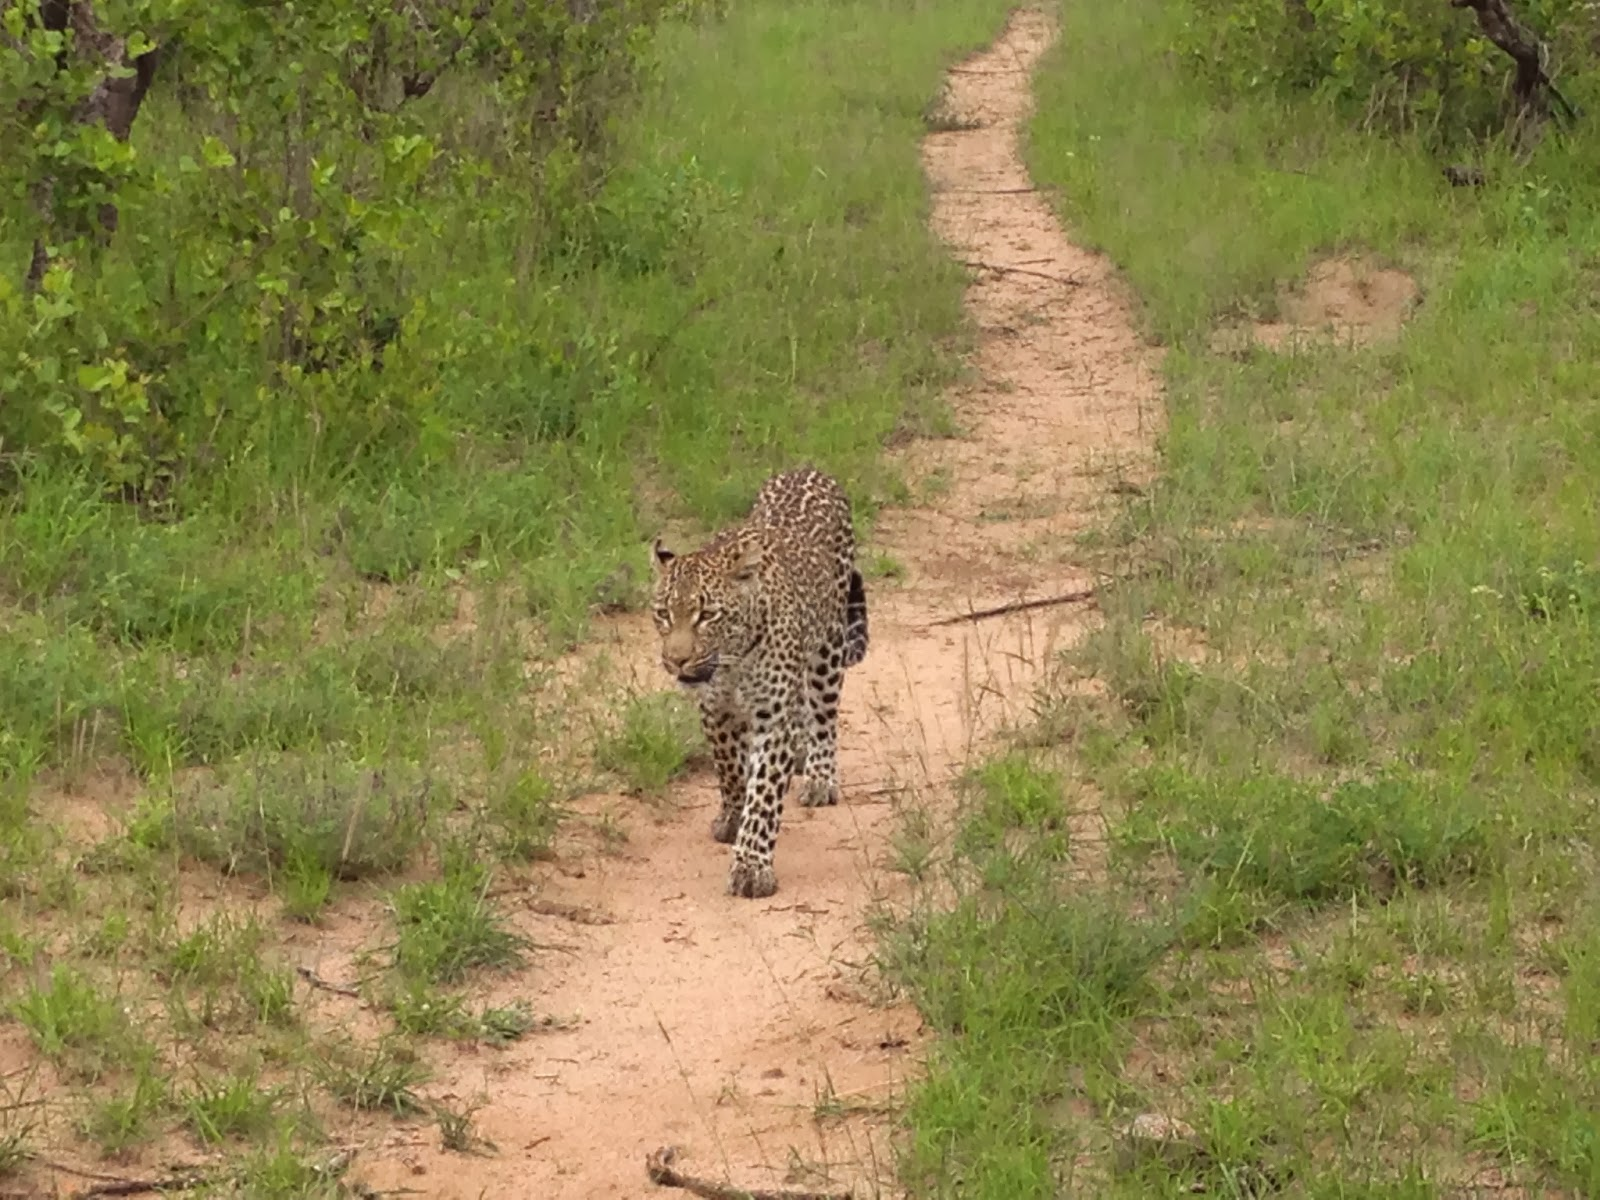 Sabi Sands - Morning game drive day 4: Female leopard spotted